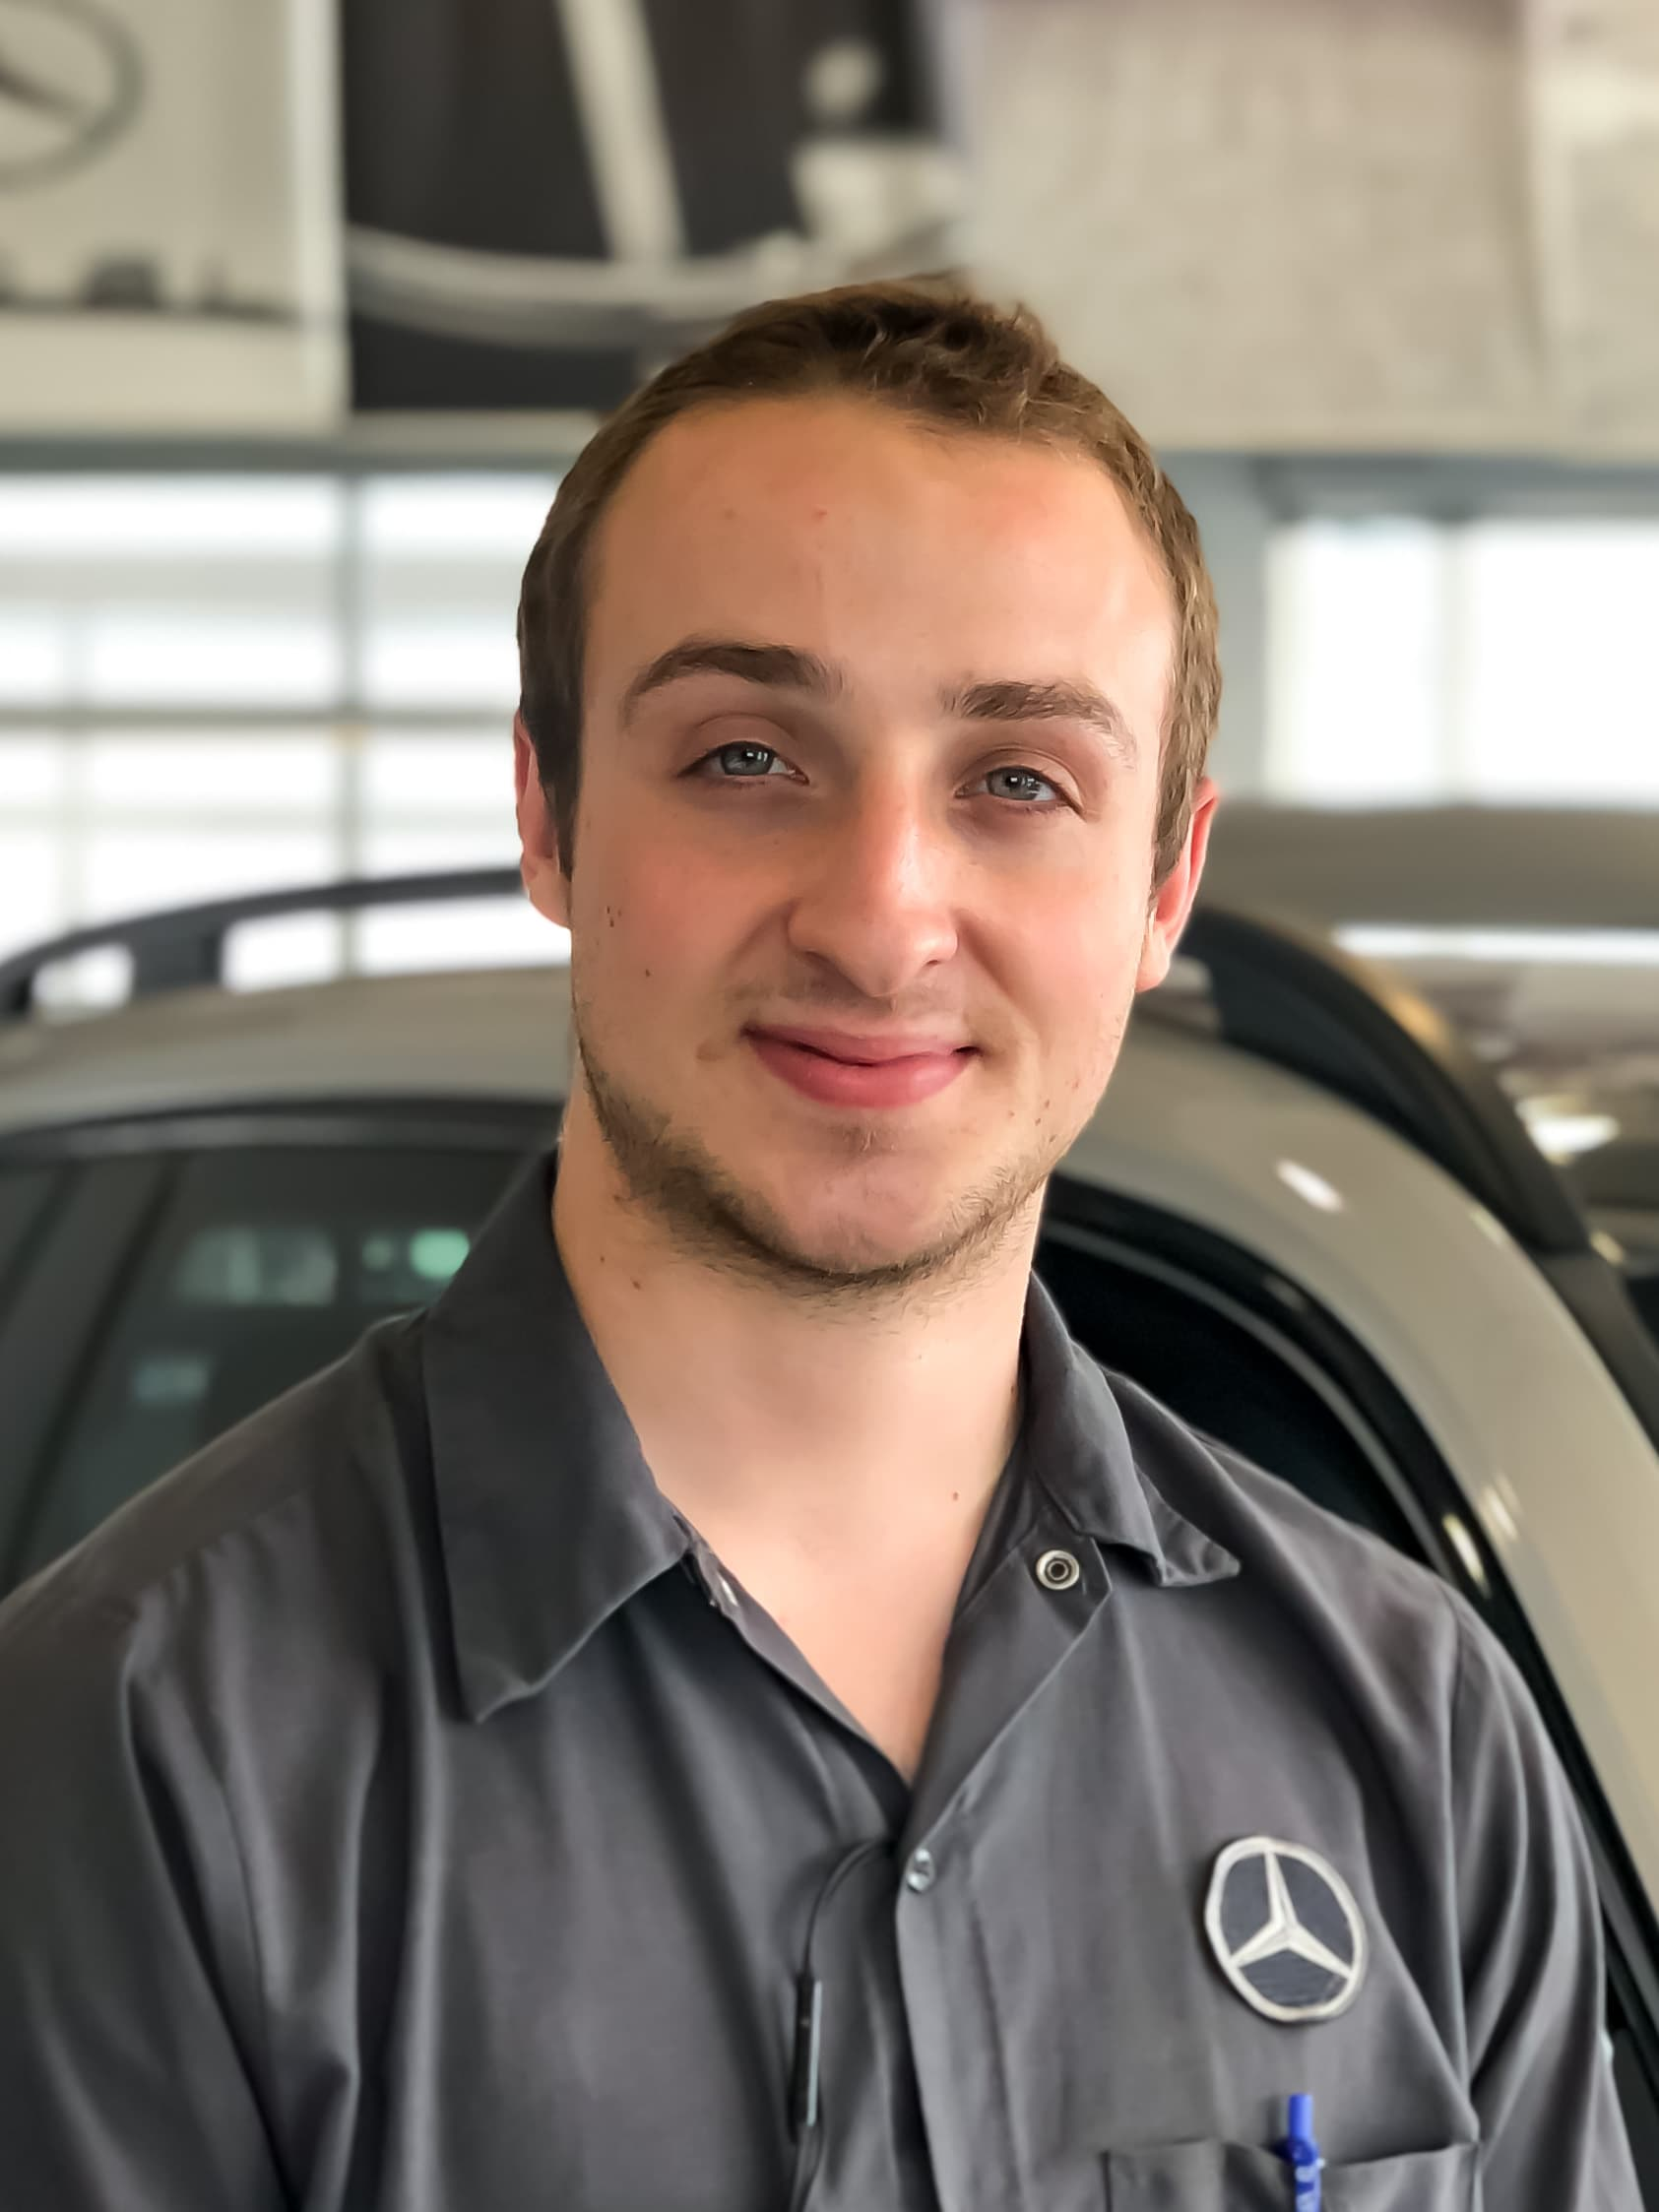 Jake Dean - Automotive Service Technician – Apprentice Status